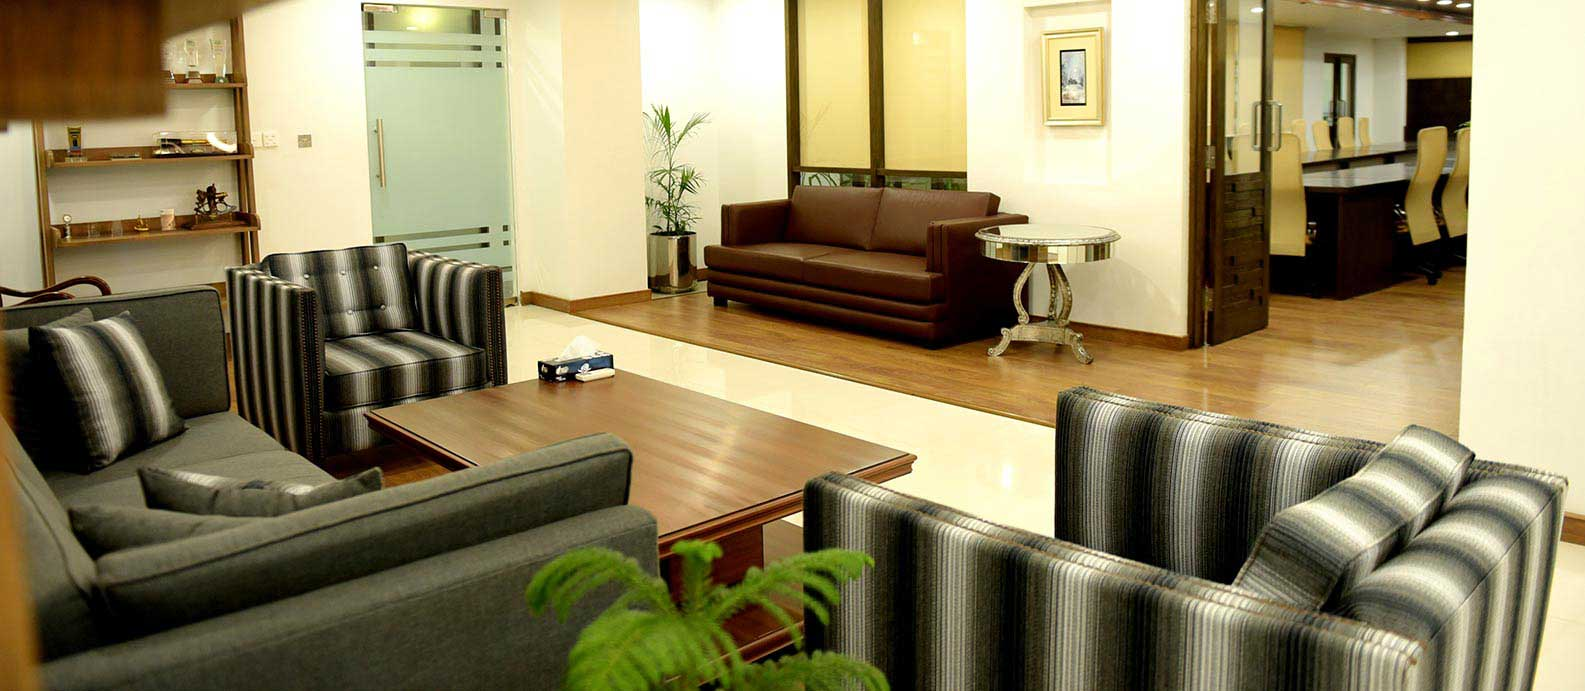 Good Corporate U0026 Commercial Interior Designing